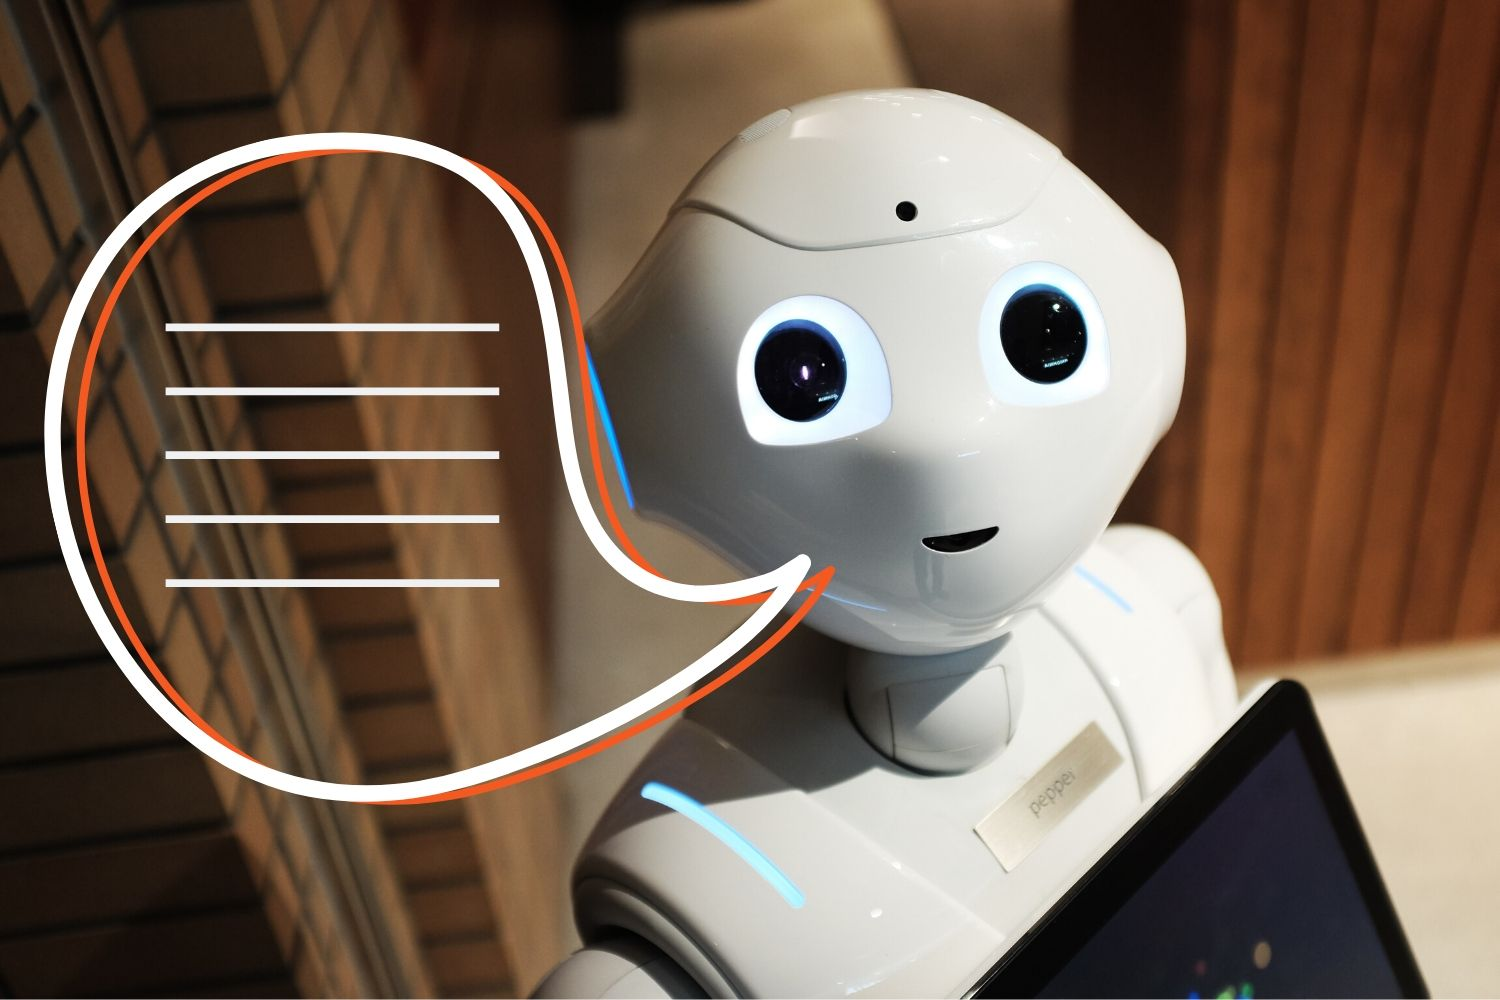 Excellent.org explains how chatbots work and how they can be used, the picture shows a robot with a speech bubble